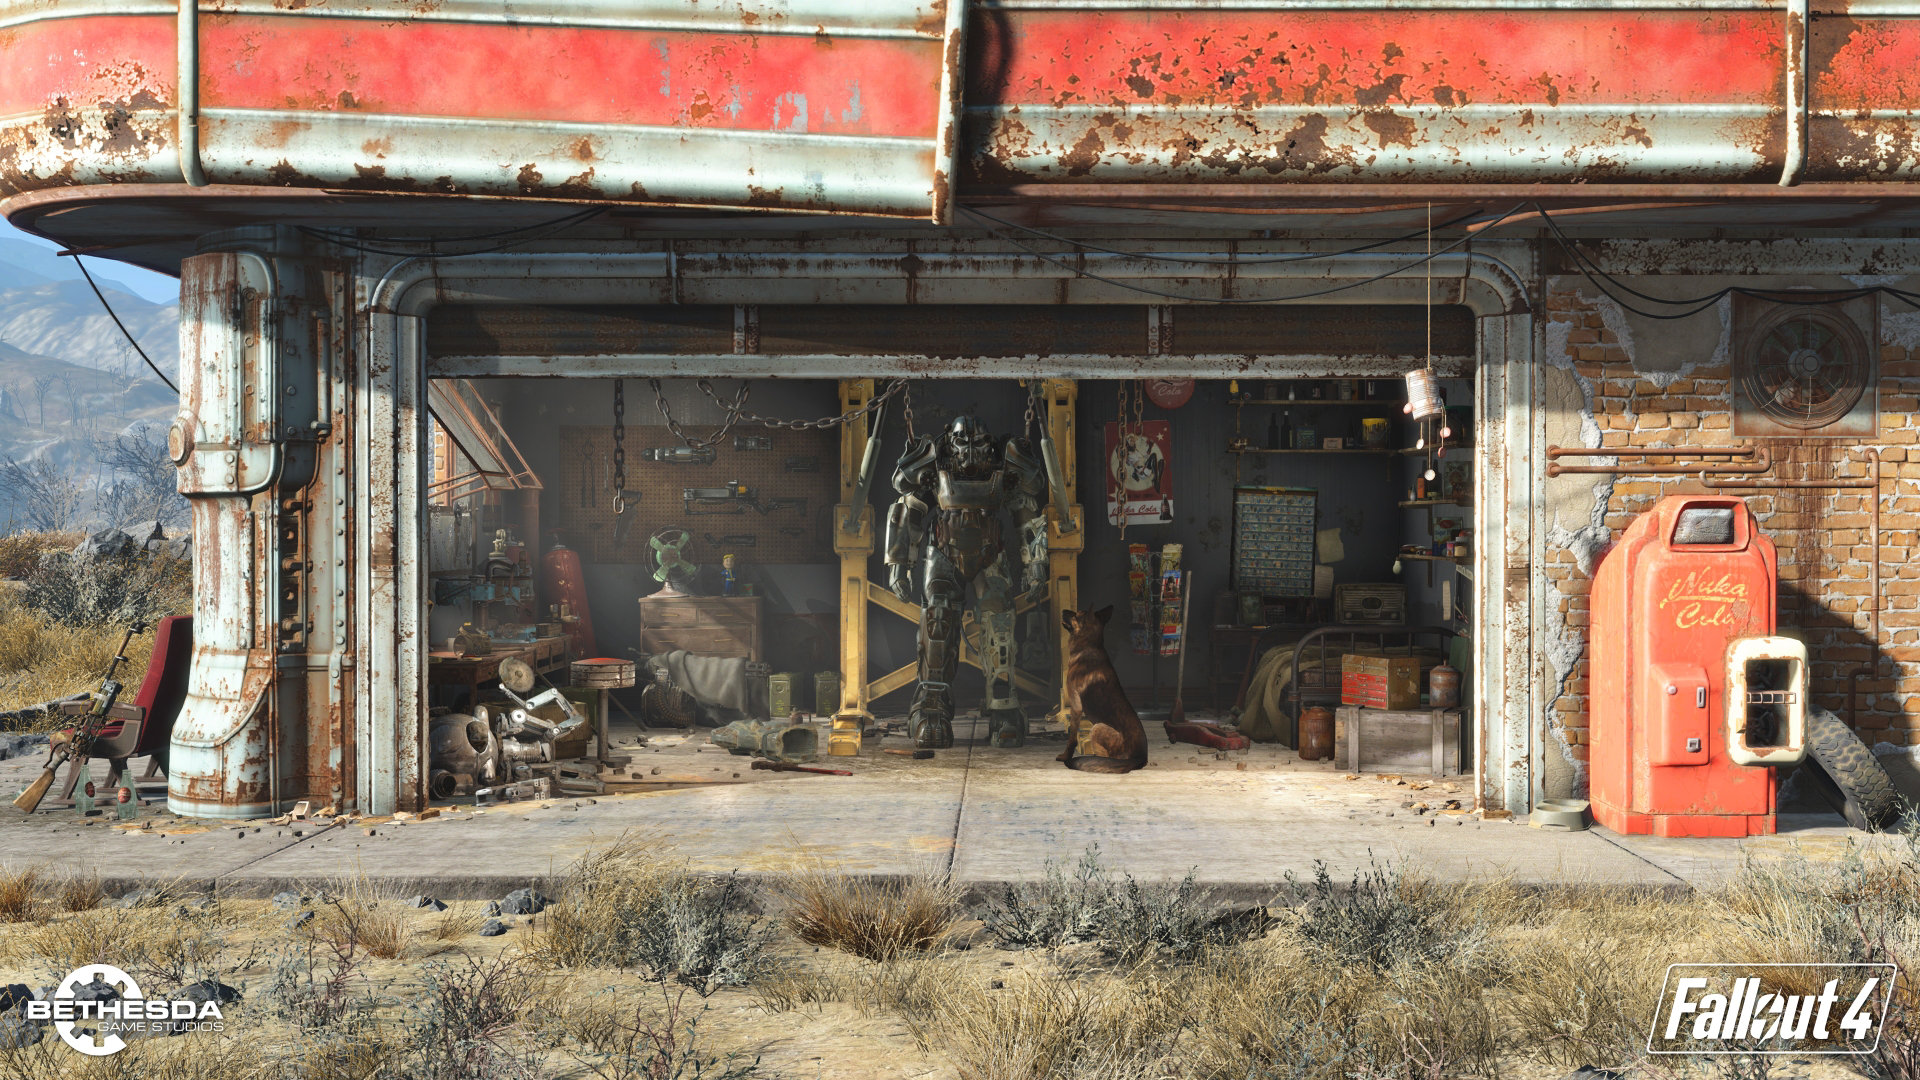 fallout-4-screenshot-01-ps4-us-04aug15?$